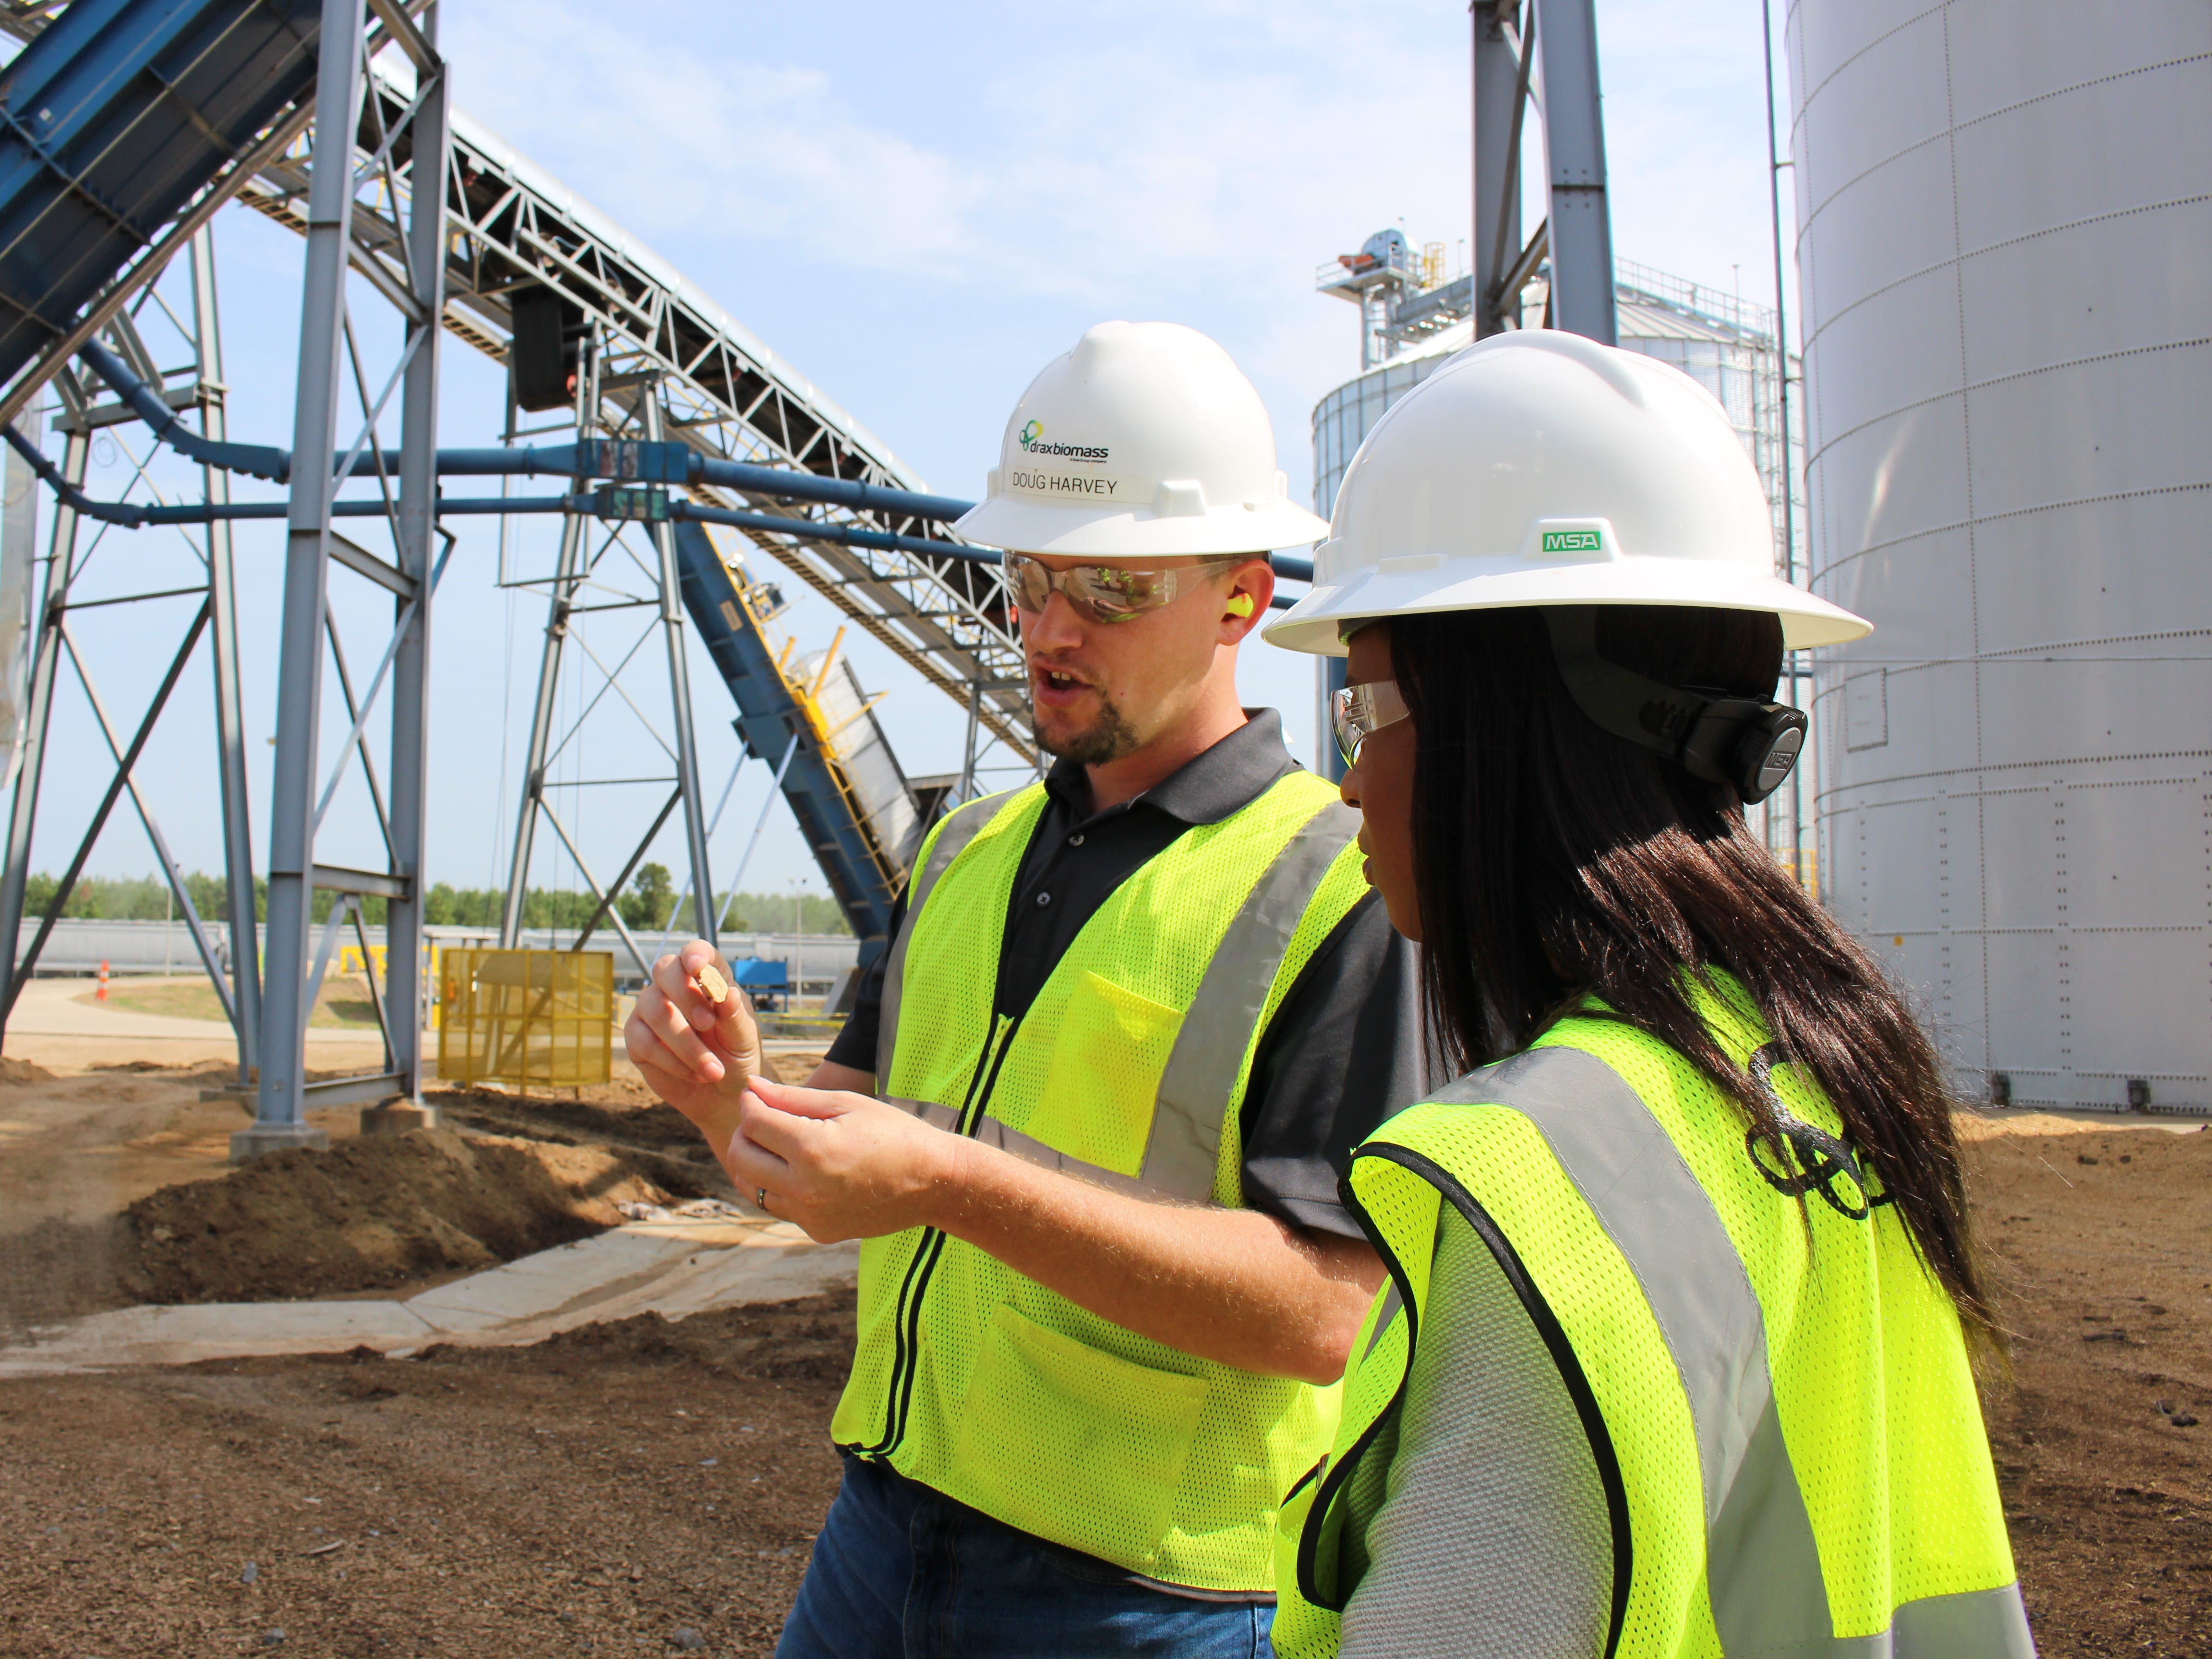 Drax Biomass converts pine timber and sawmill residual fiber into biomass pellets that are used to generate power in the United Kingdom. Plant manager at Morehouse Bioenergy Doug Harvey is seen showing wood material after it moves through a hammermill to KTVE/KARD Reporter Rae'Ven Jackson.